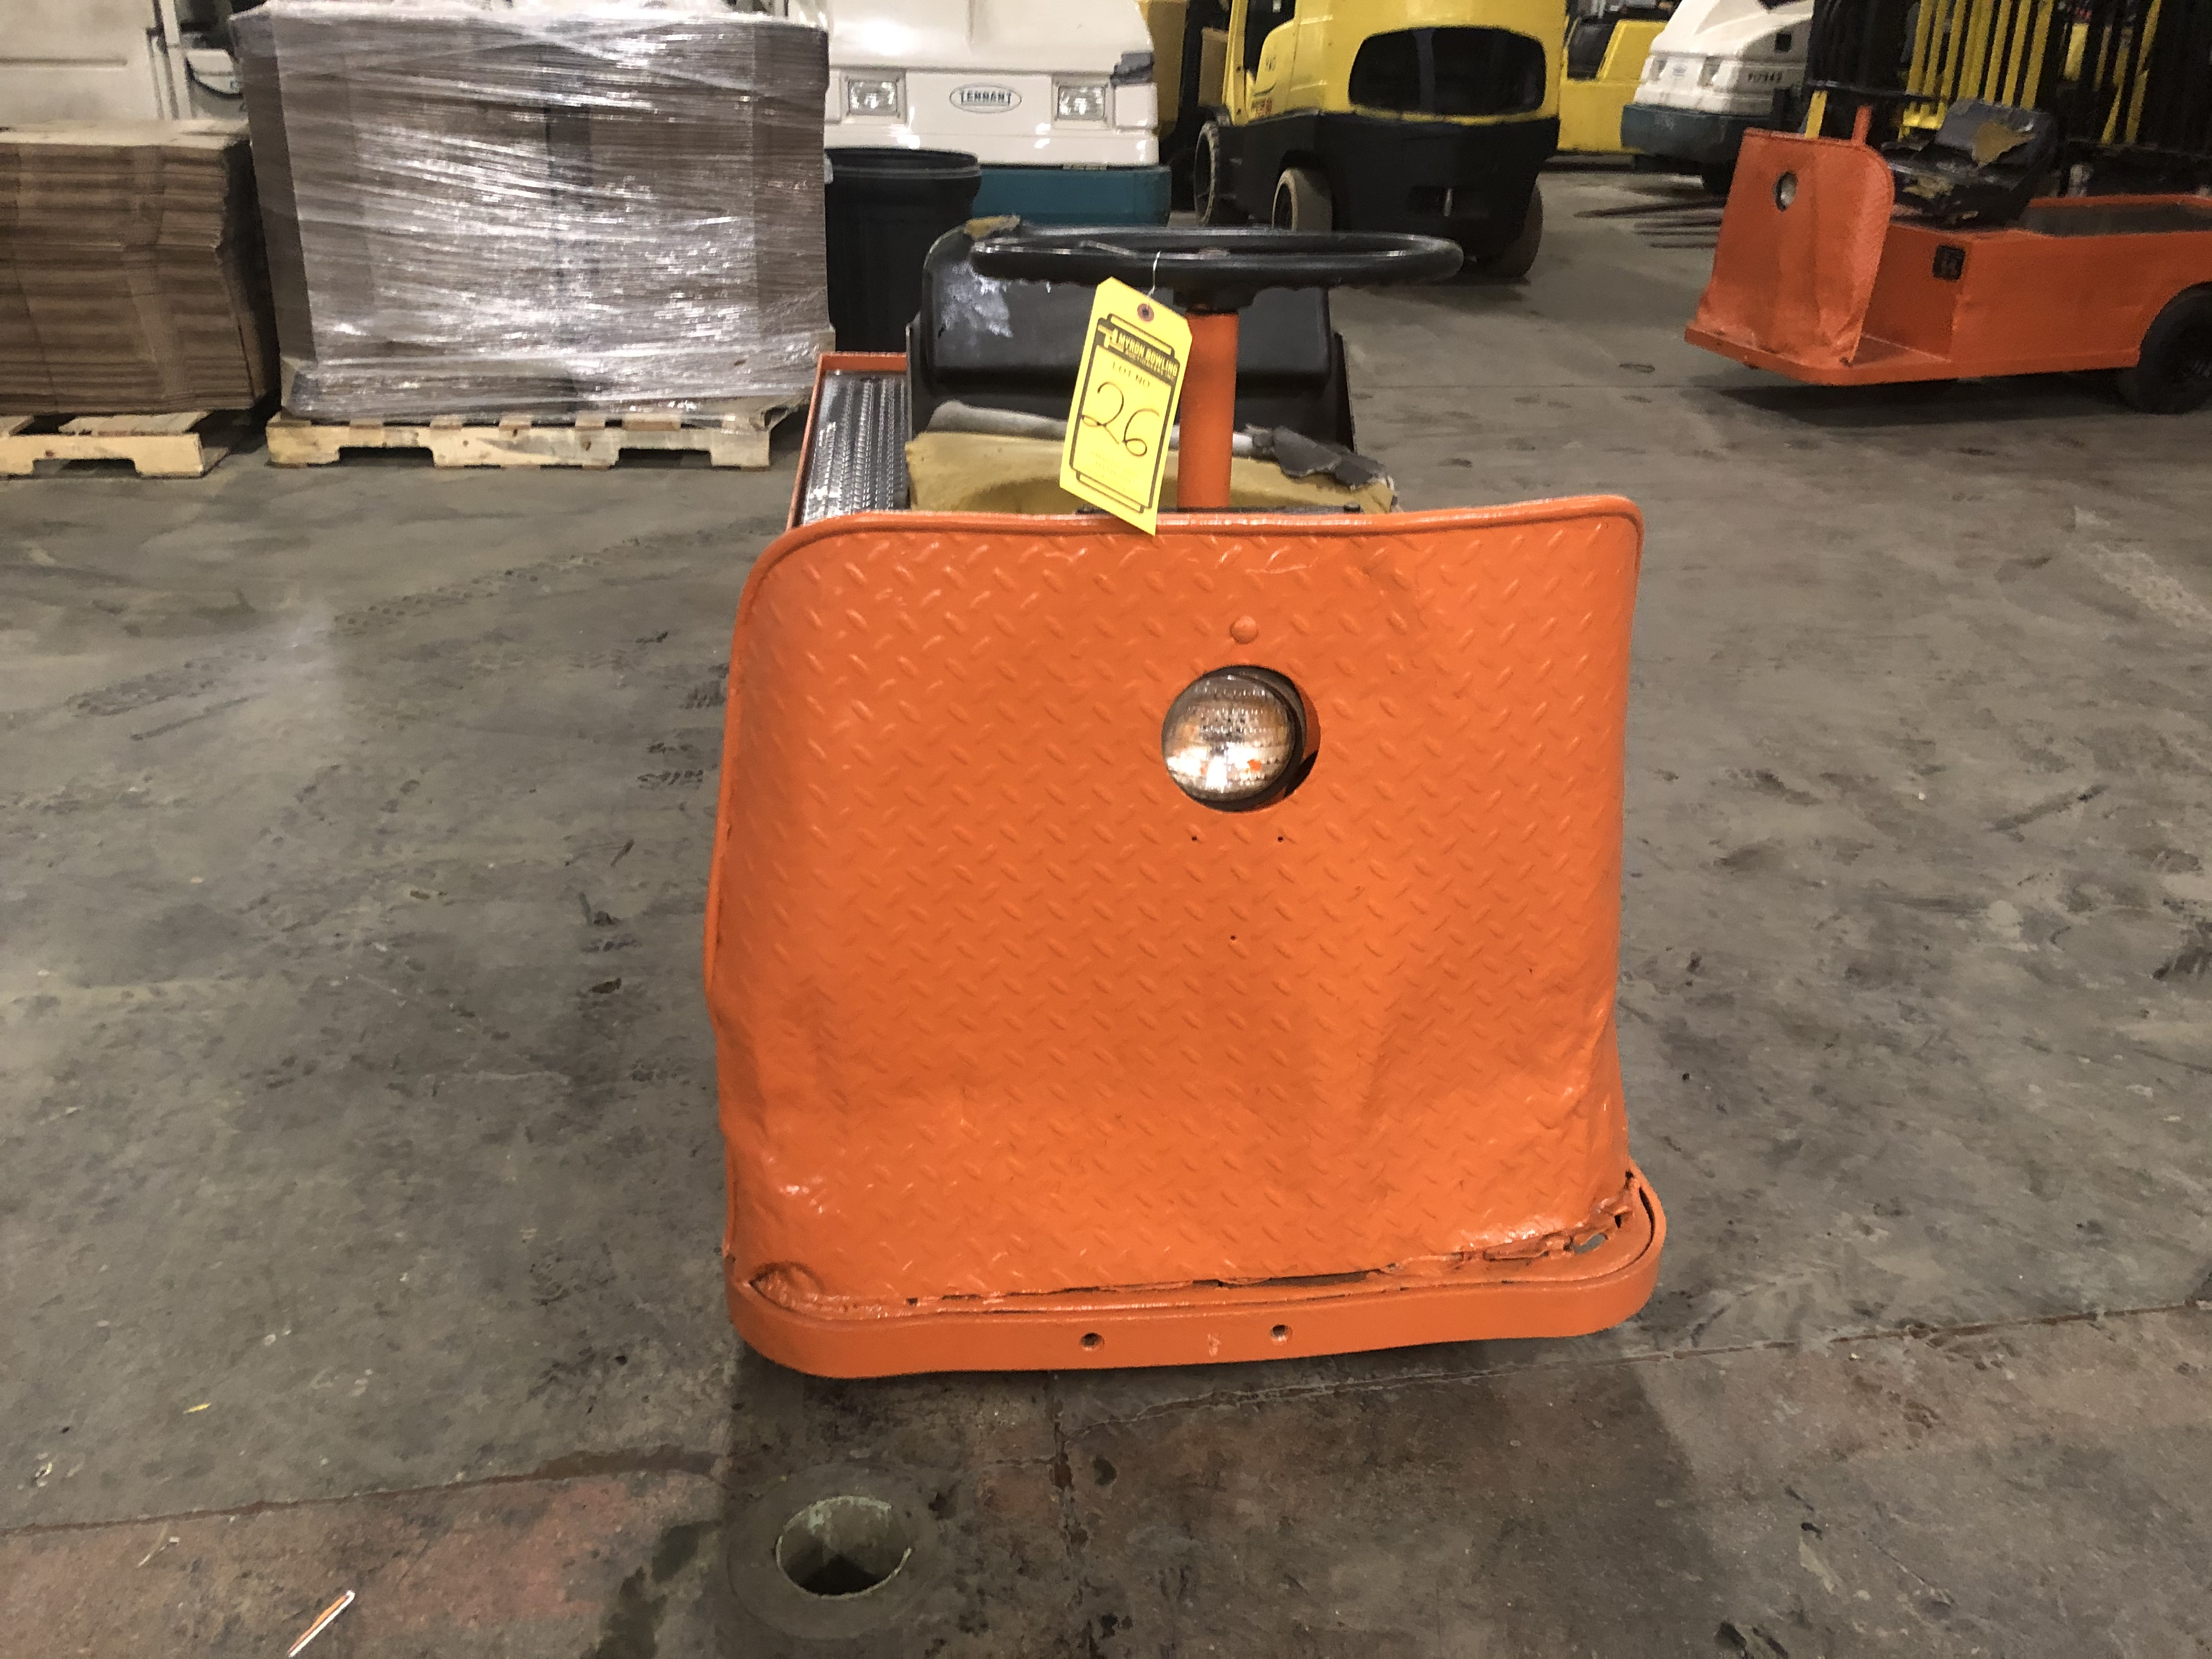 Lot 26 - 2007 TAYLOR-DUNN 3-WHEEL ELECTRIC PERSONNEL CART, ON-BOARD CHARGER, PNEUMATIC TIRES,450-LB. CAPACITY